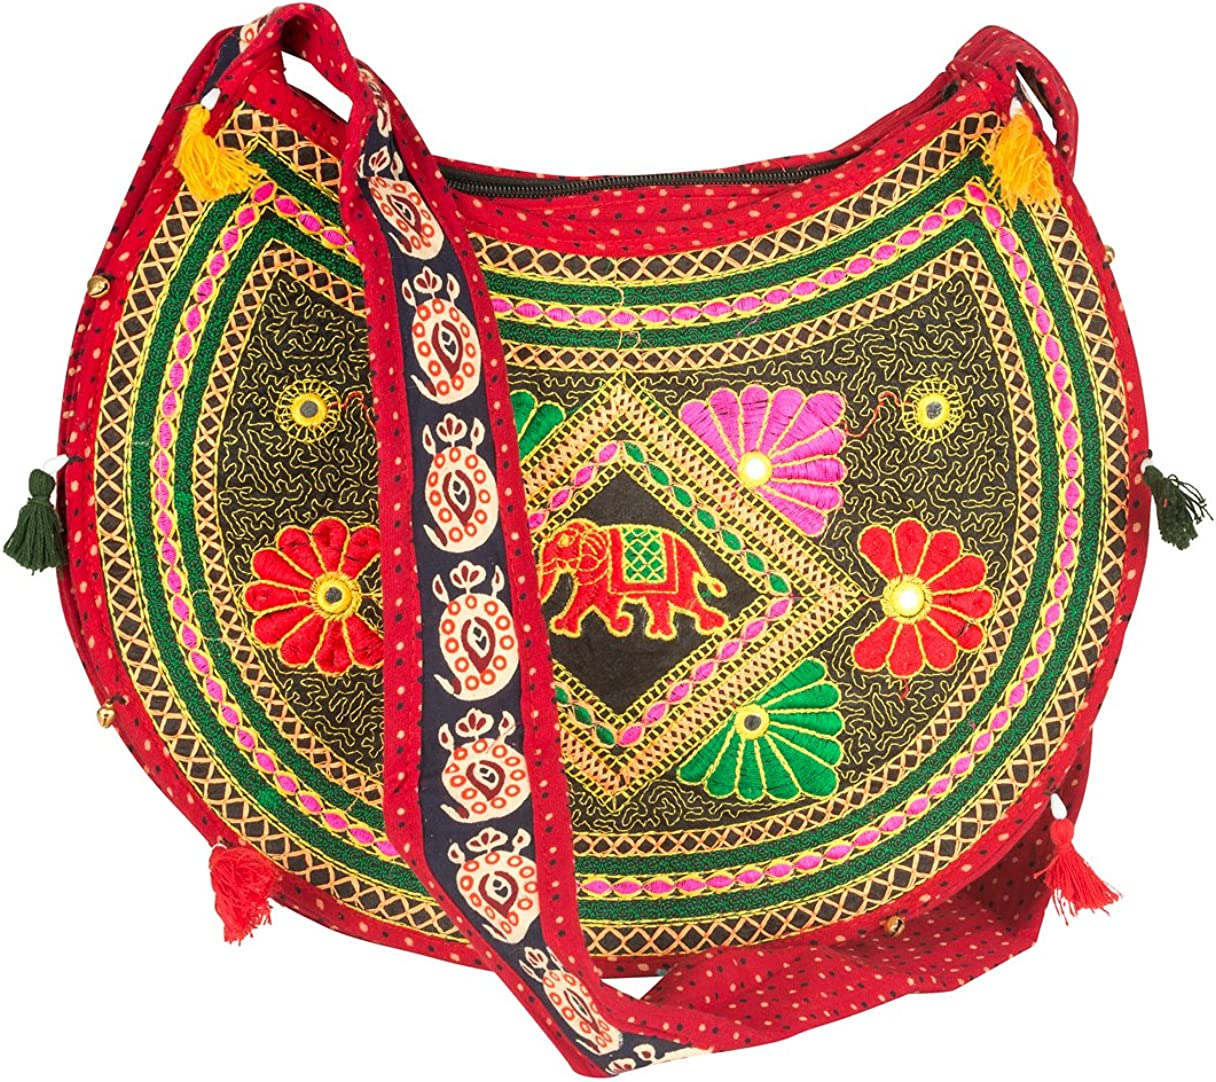 Sling Cross body Elephant Hobo Women Messenger Shoulder Bag Red Embroidered Hippie Casual Colorful Medium Small Satchel Tote